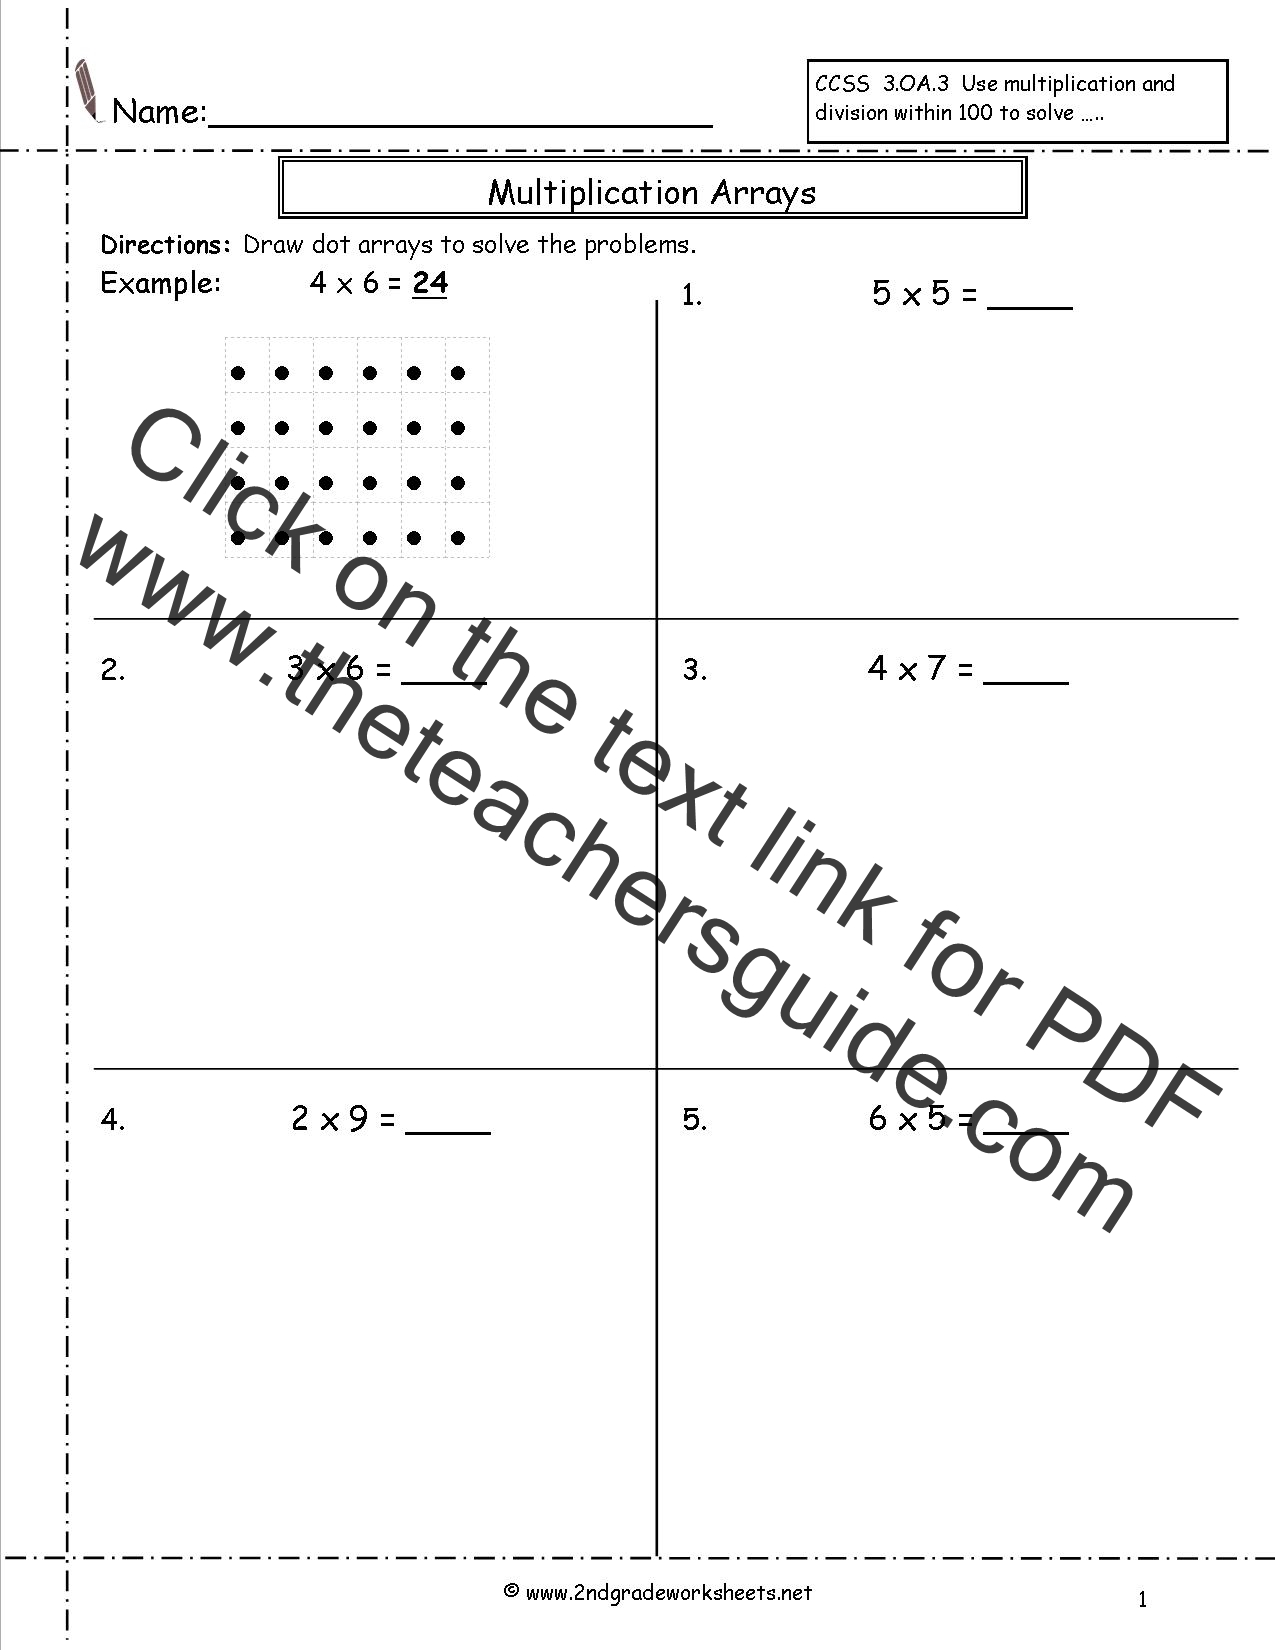 Multiplication Arrays Worksheets – Free Printable Multiplication Worksheets for 2nd Grade